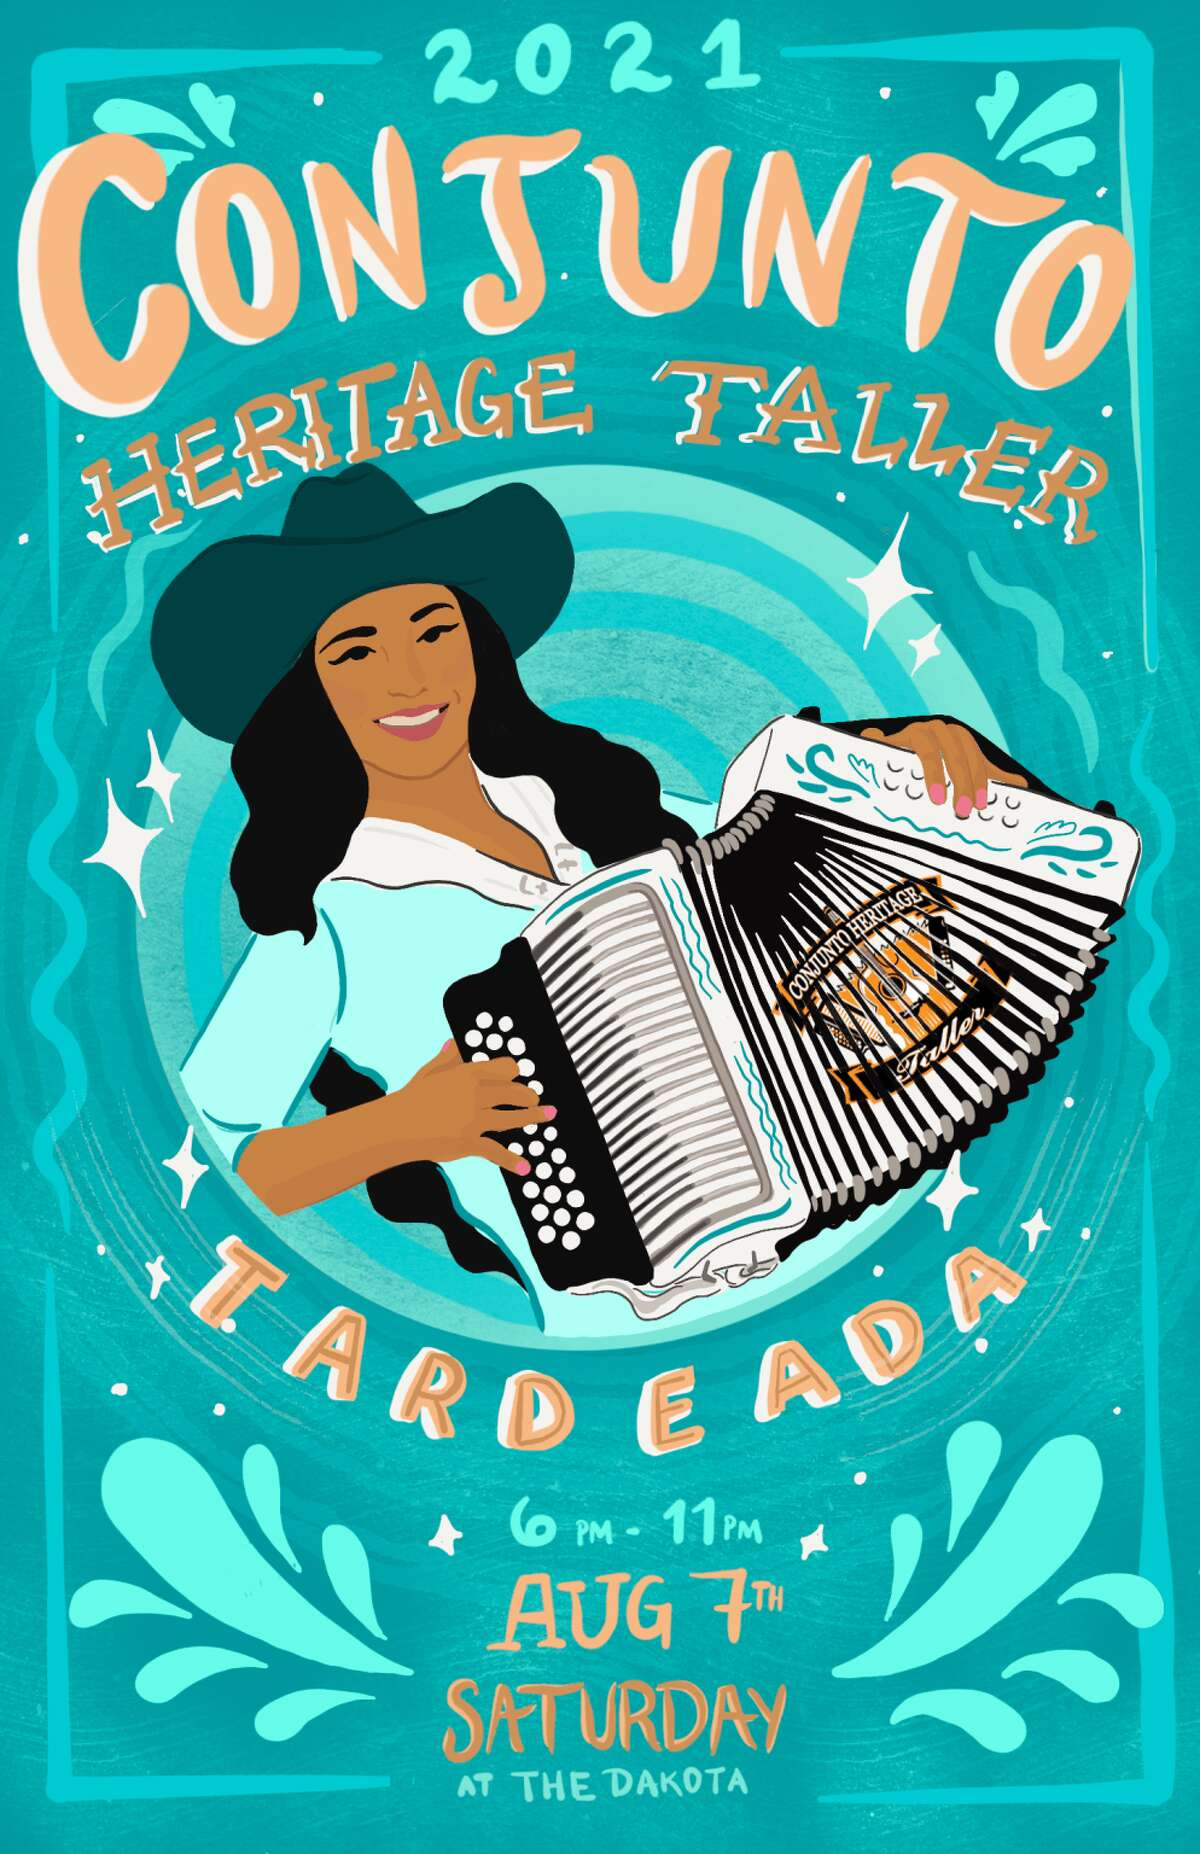 Conjunto Heritage Taller (CHT), a community organization which provides low-cost and at times free music instruction across San Antonio to preserve the tradition, is hosting the August 7 tardeada at the East Side spot to focus on the women in the industry.